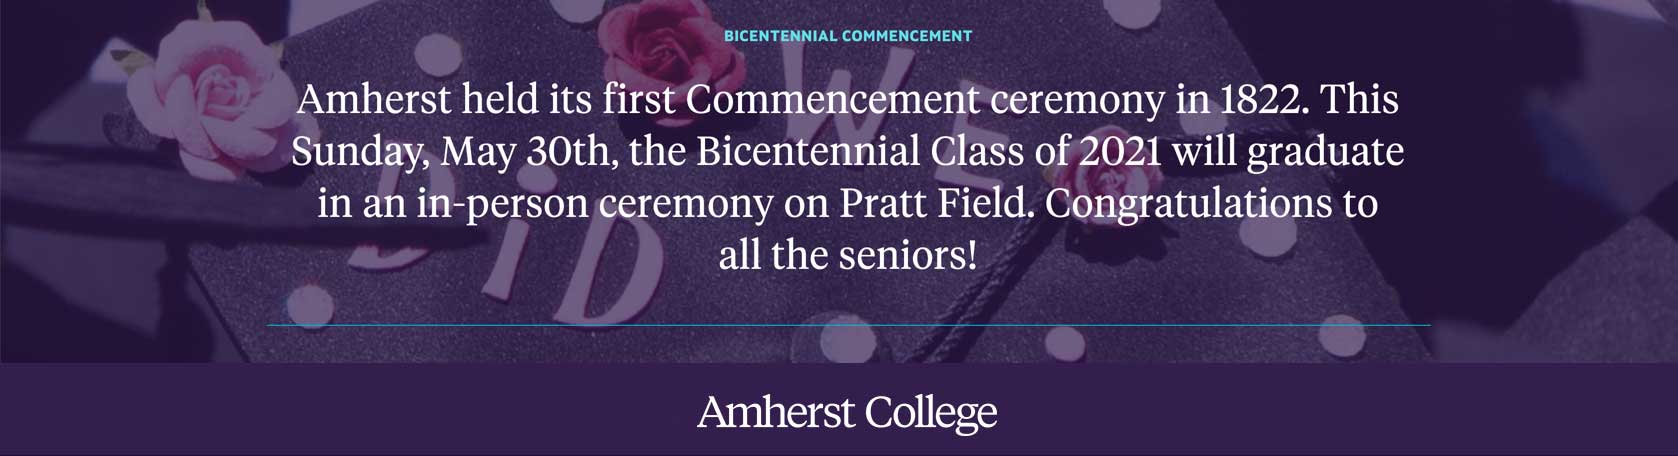 Bicentennial fact: First commencement ceremony at Amherst College was in 1822